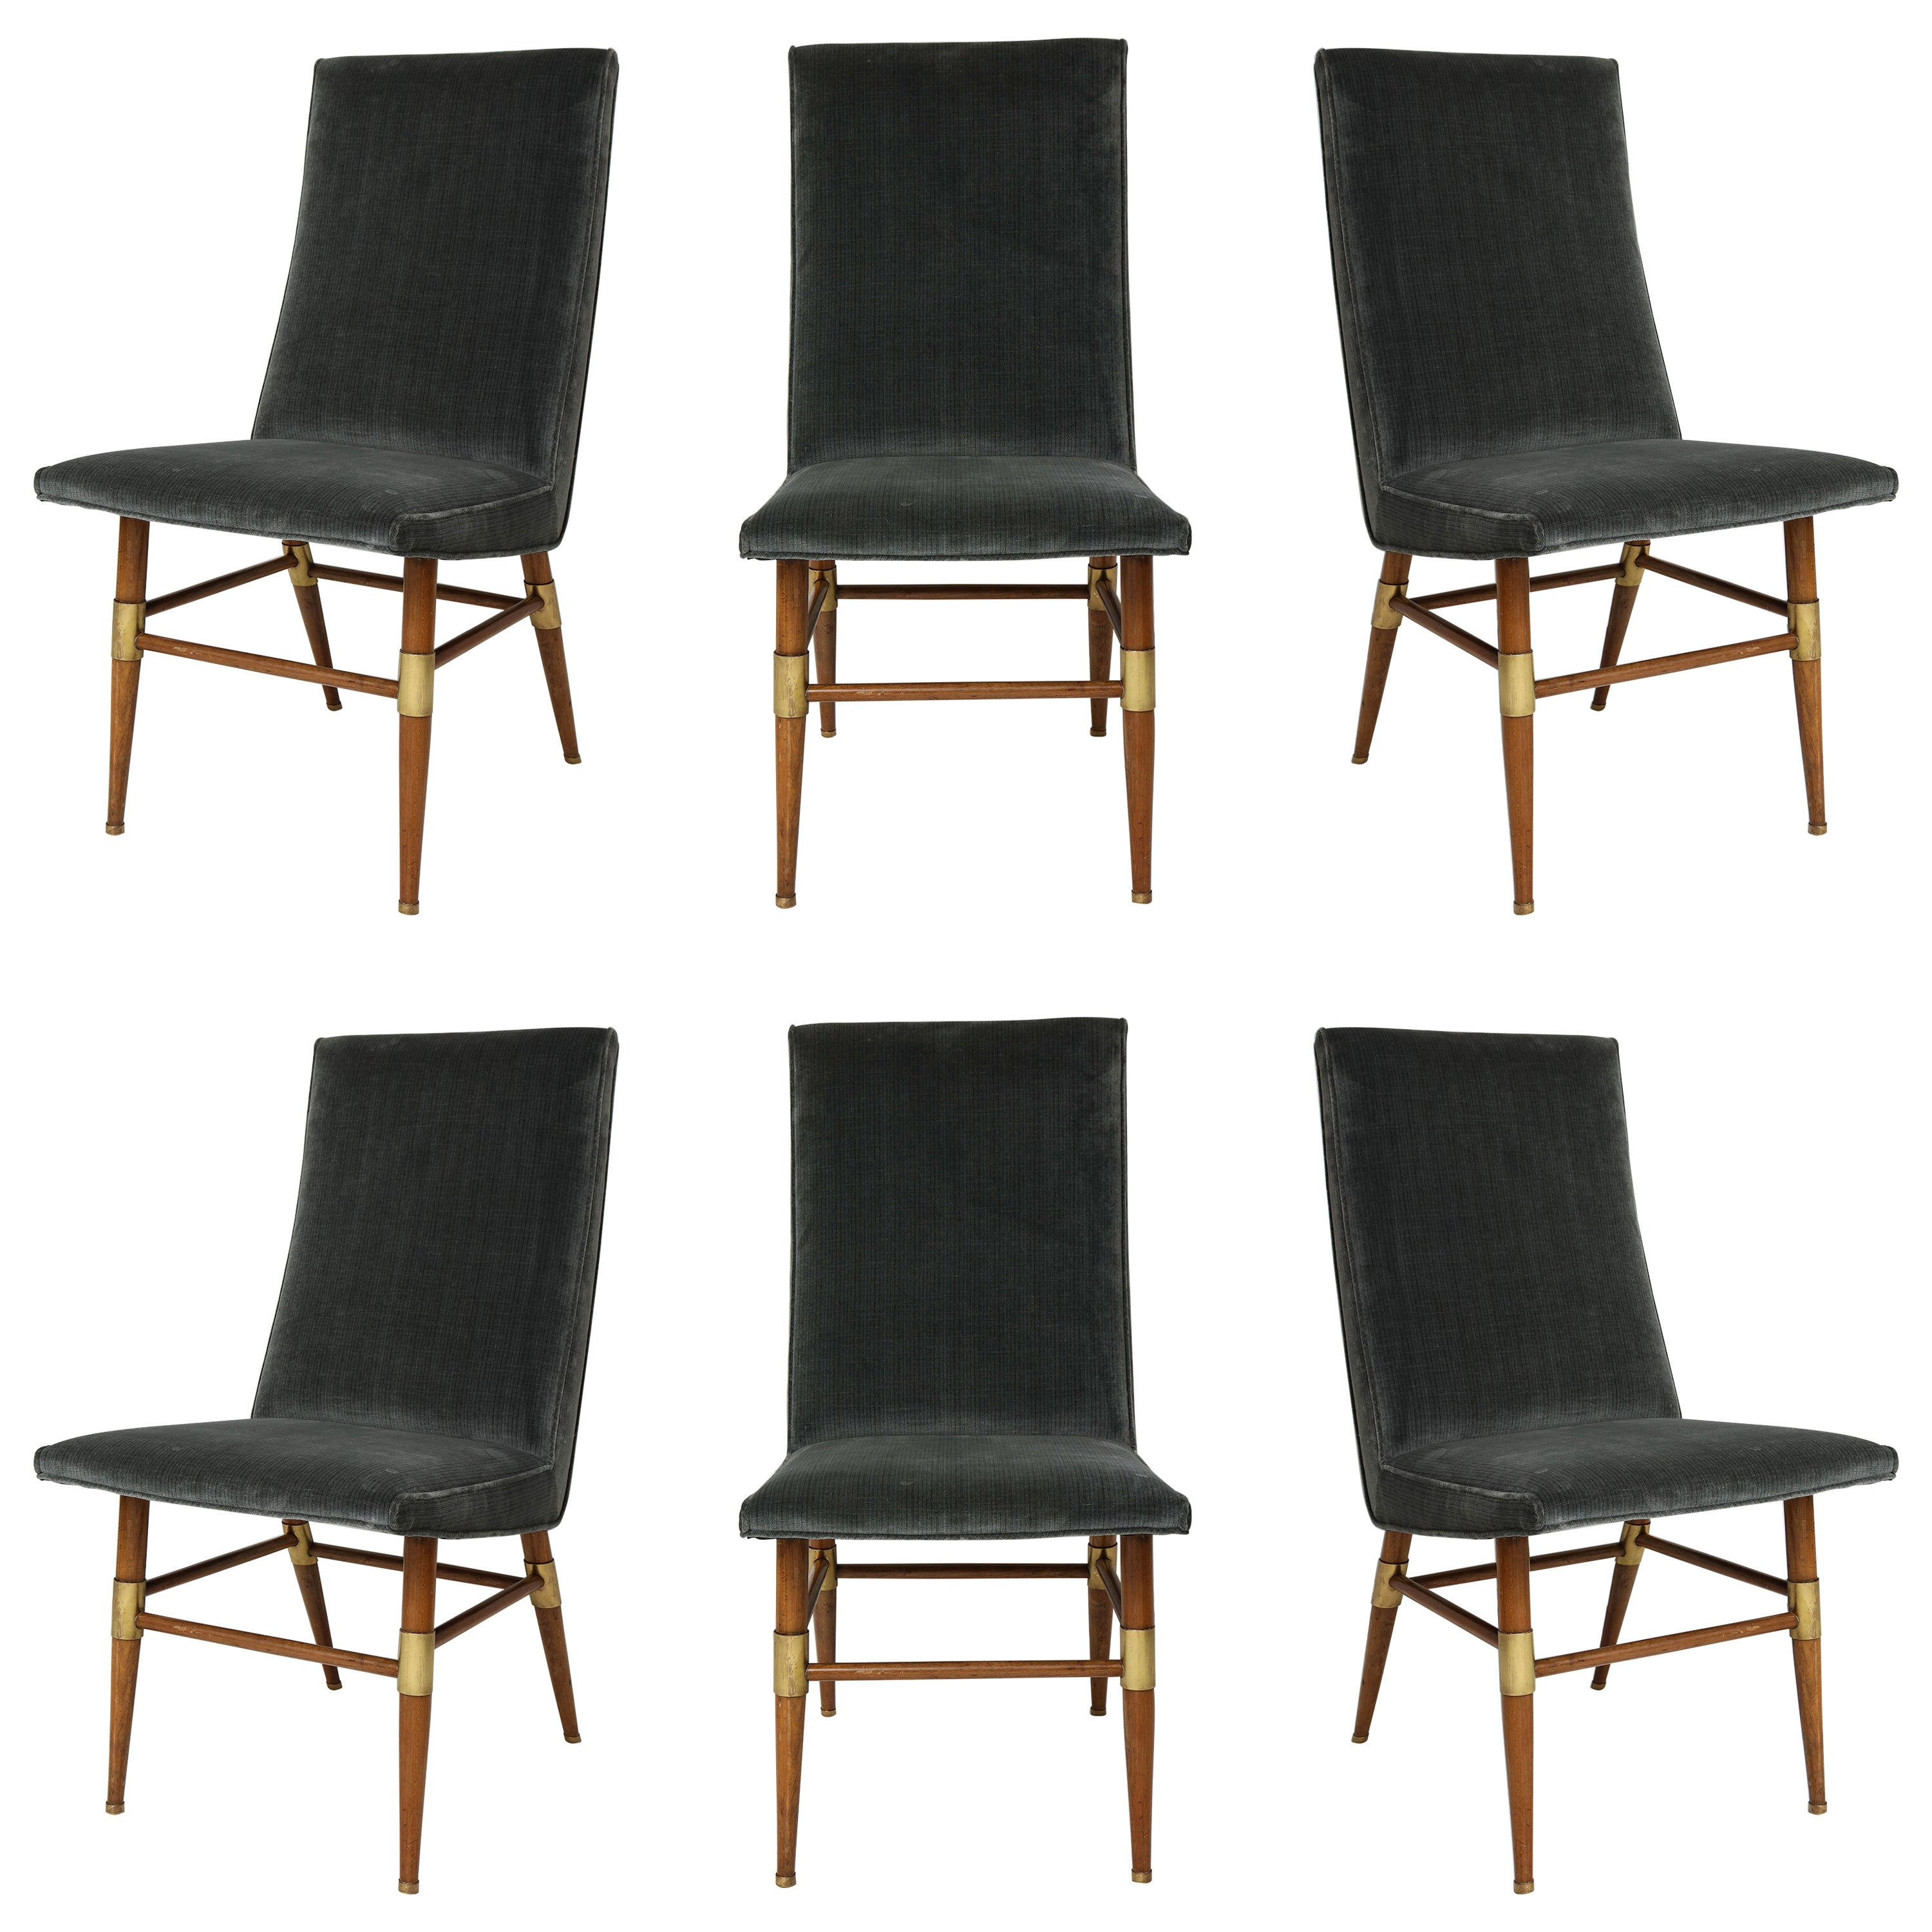 Set of Six Italian Mid-Century Modern Dining Chairs, Recently Upholstered